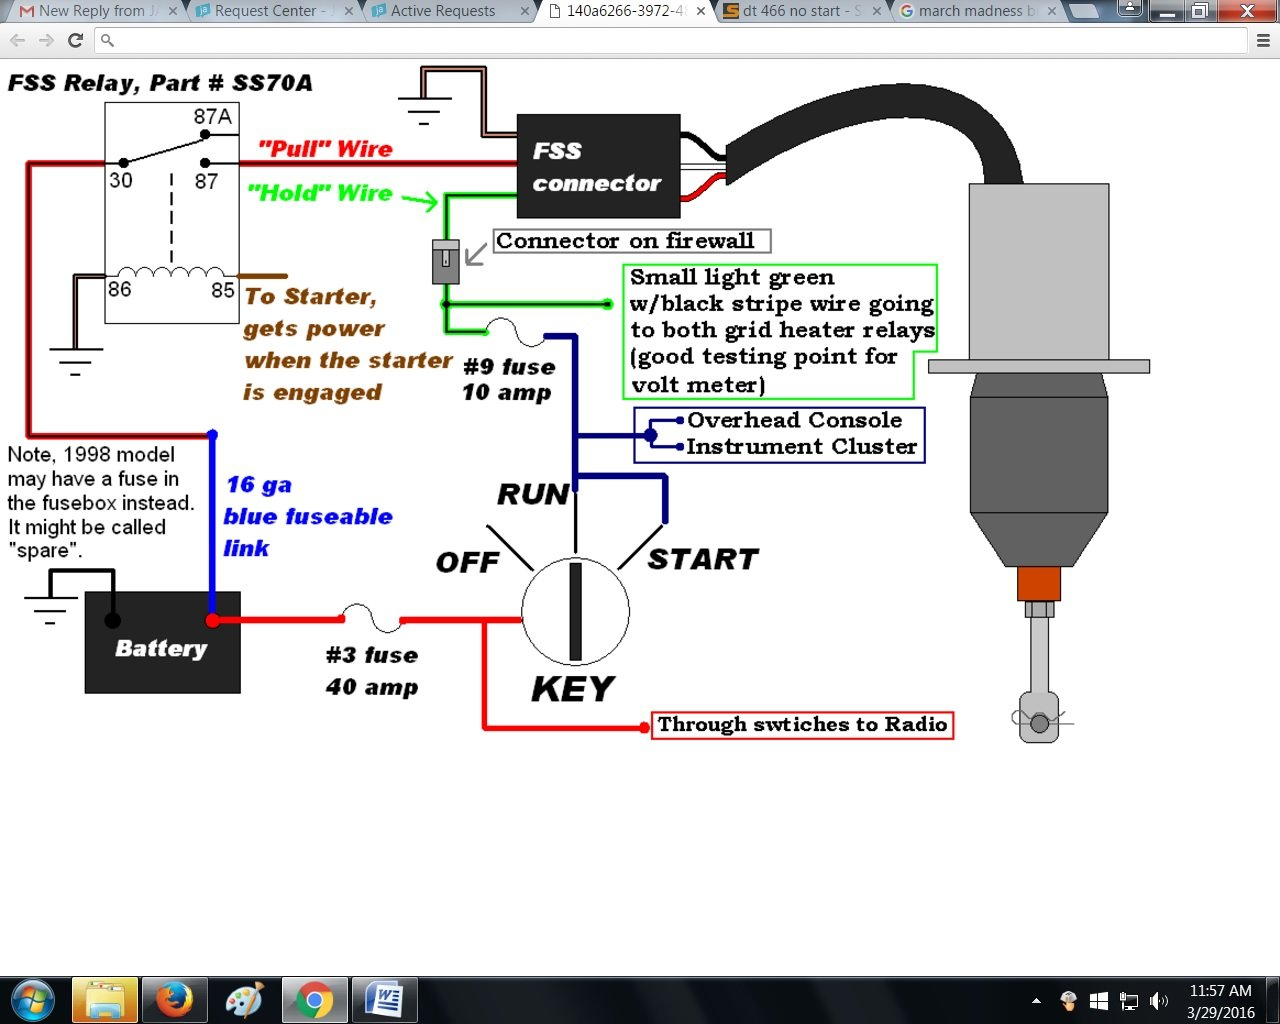 fuel stop solenoid wiring diagram detailed schematic diagrams starter wiring diagram fuel solenoid wiring auto electrical wiring diagram \\u2022 starter solenoid wiring drawings fuel stop solenoid wiring diagram